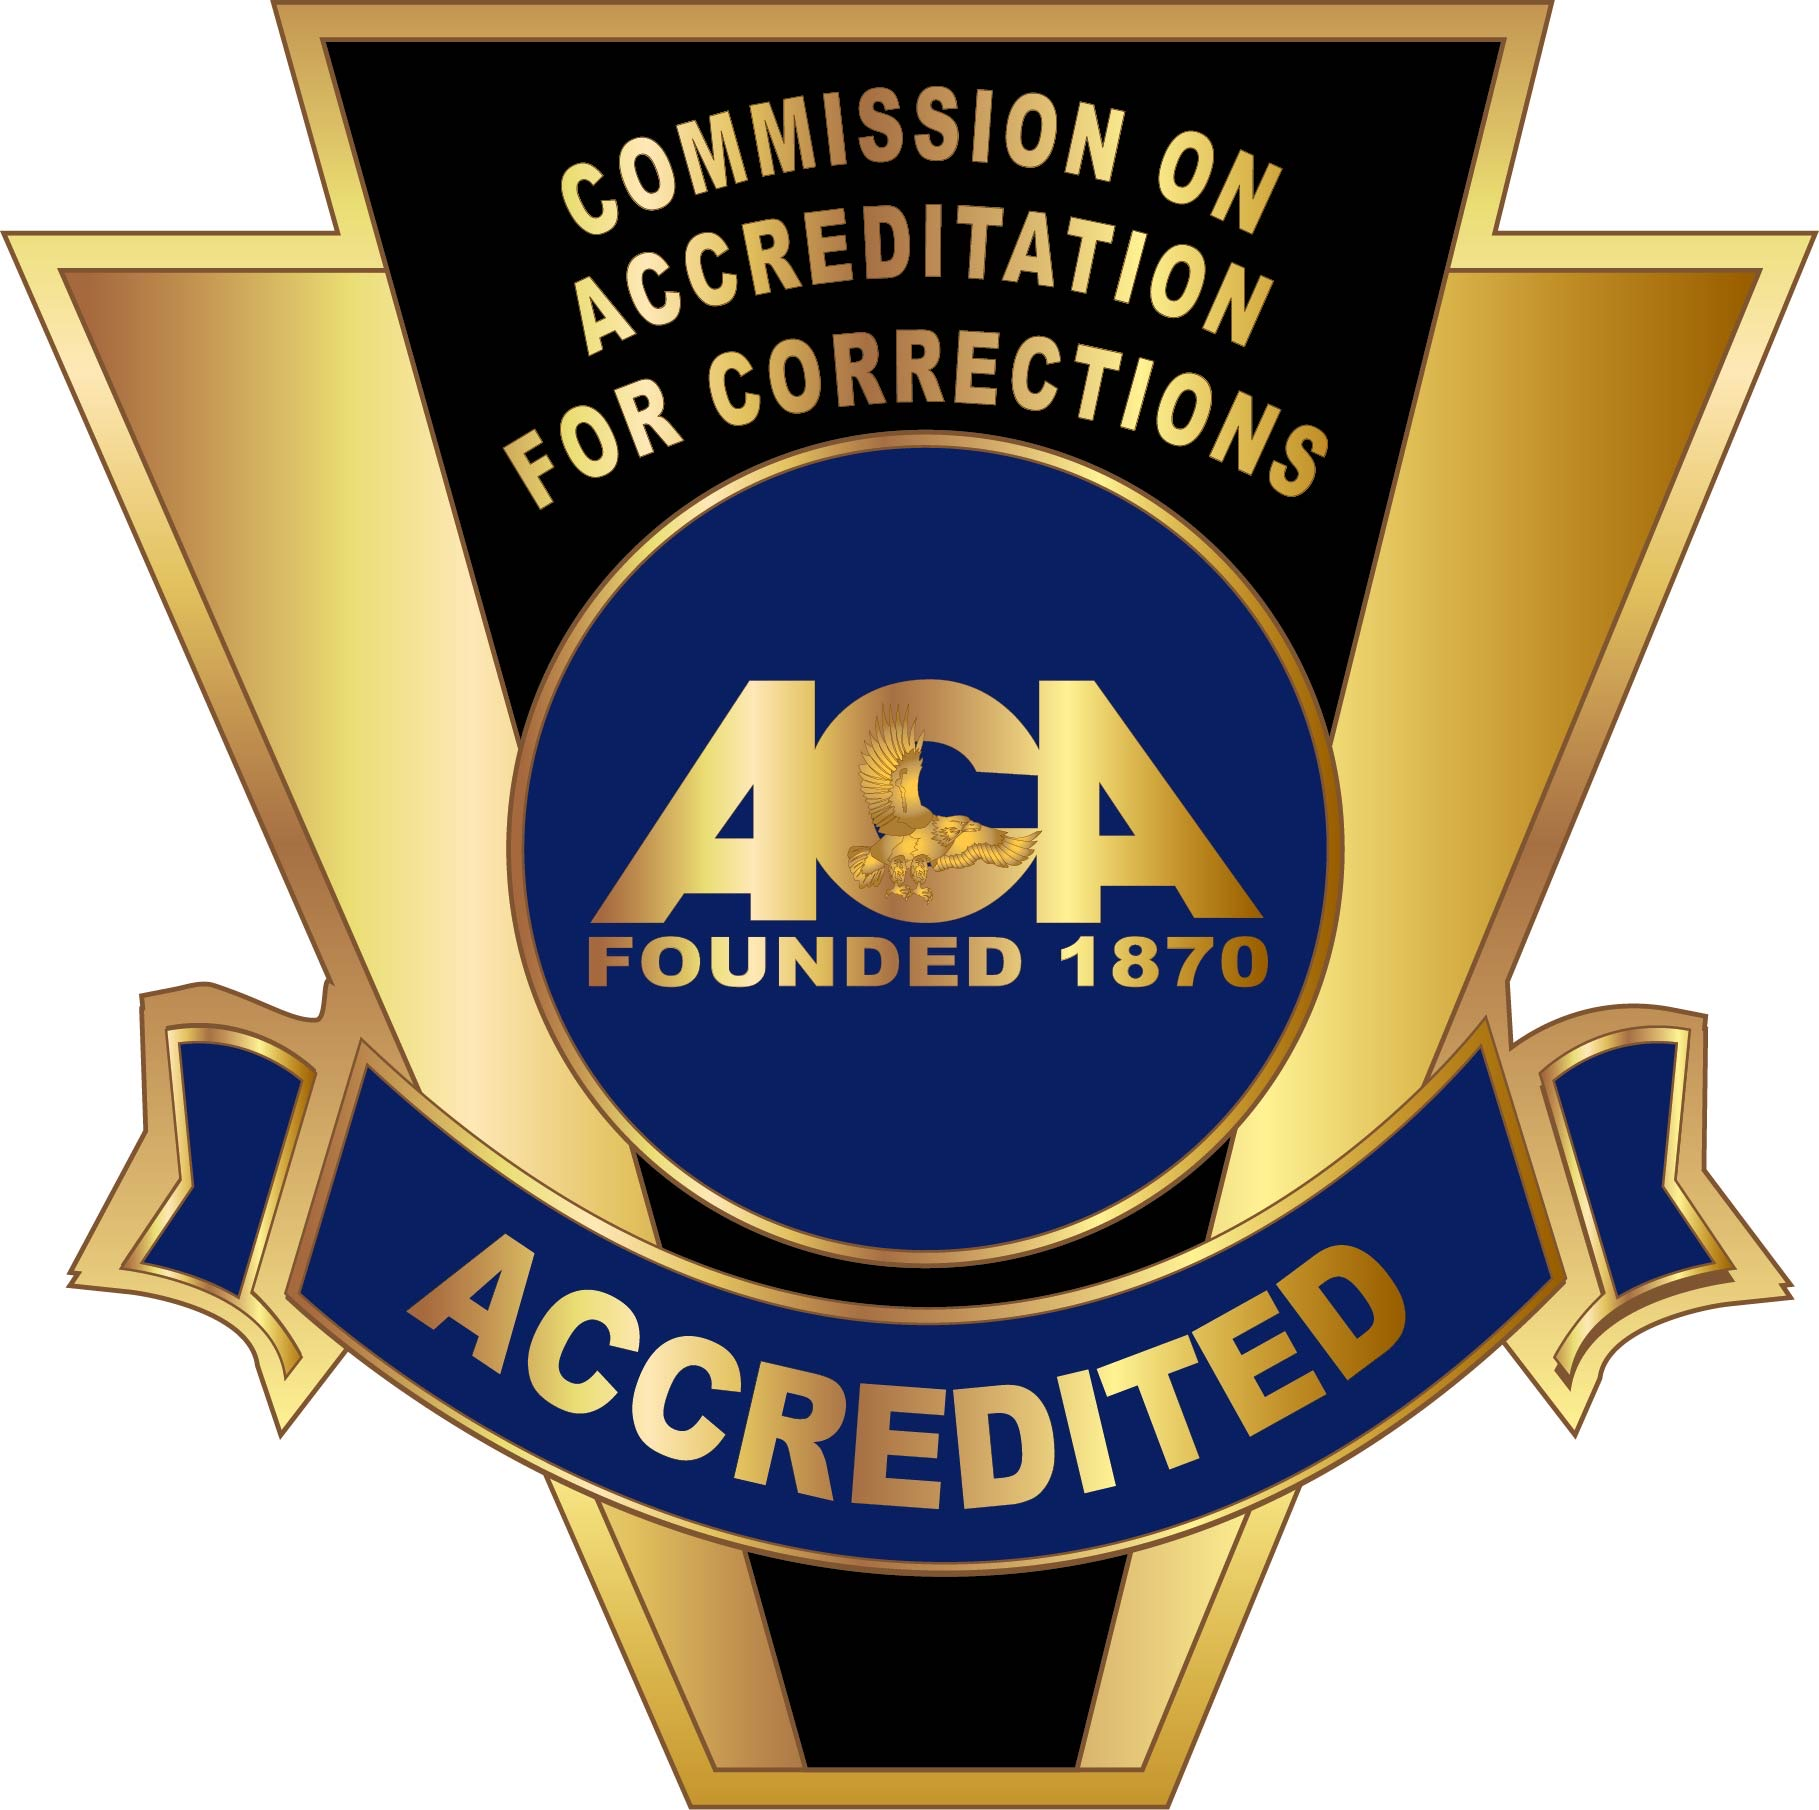 ACA Founded 1870